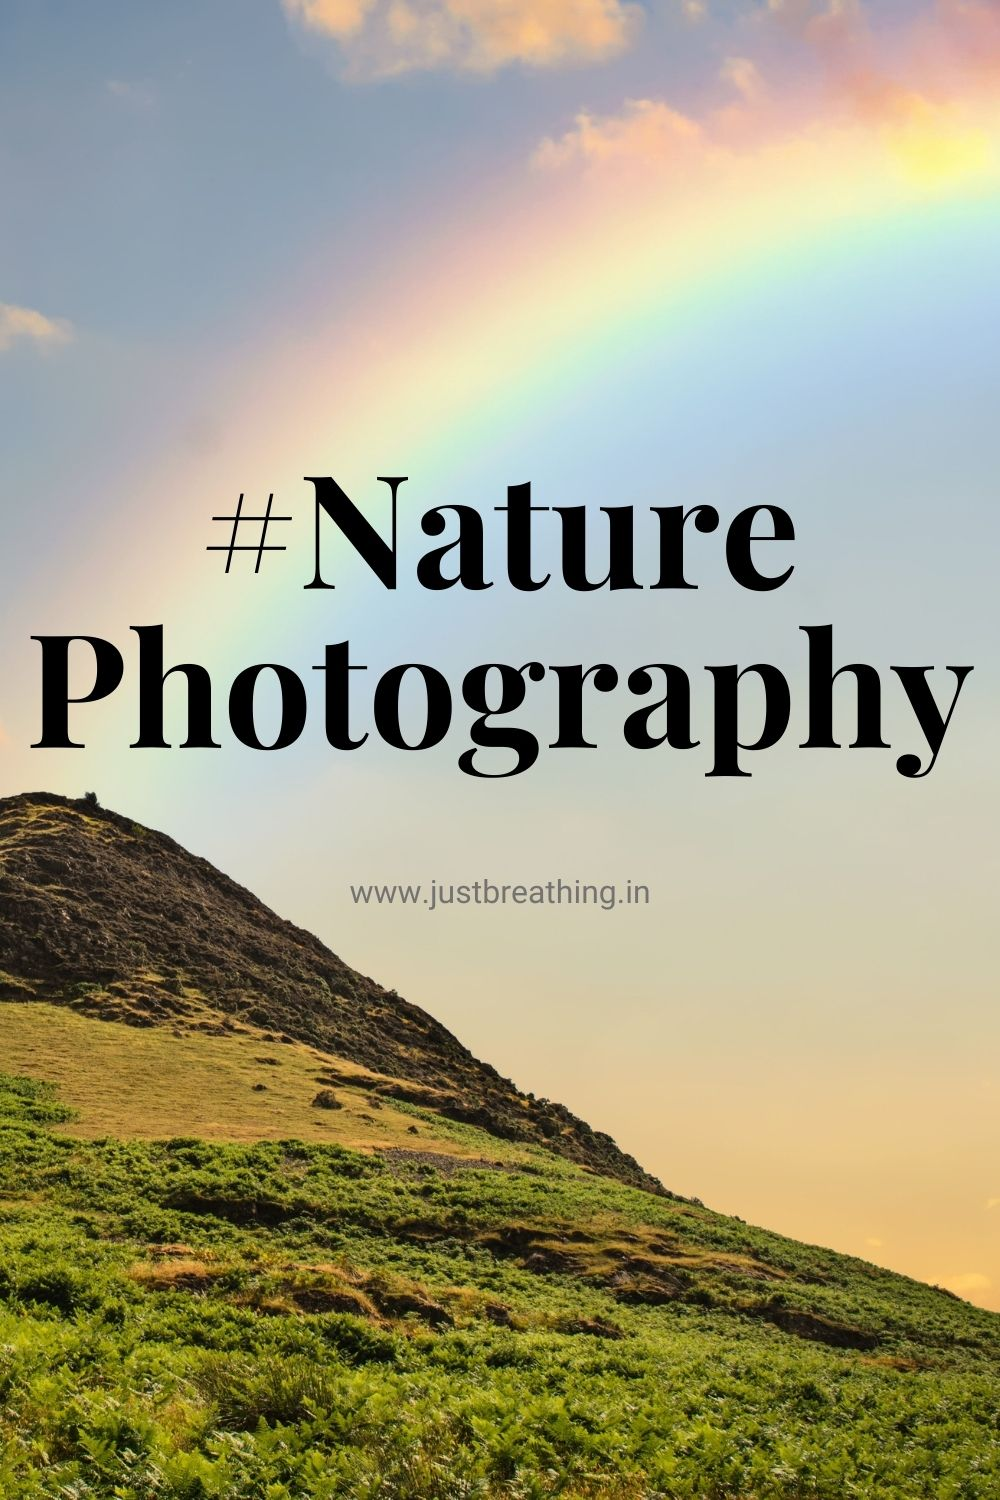 Best Nature photography hashtags for Instagram and hashtags of Nature #Naturephotography